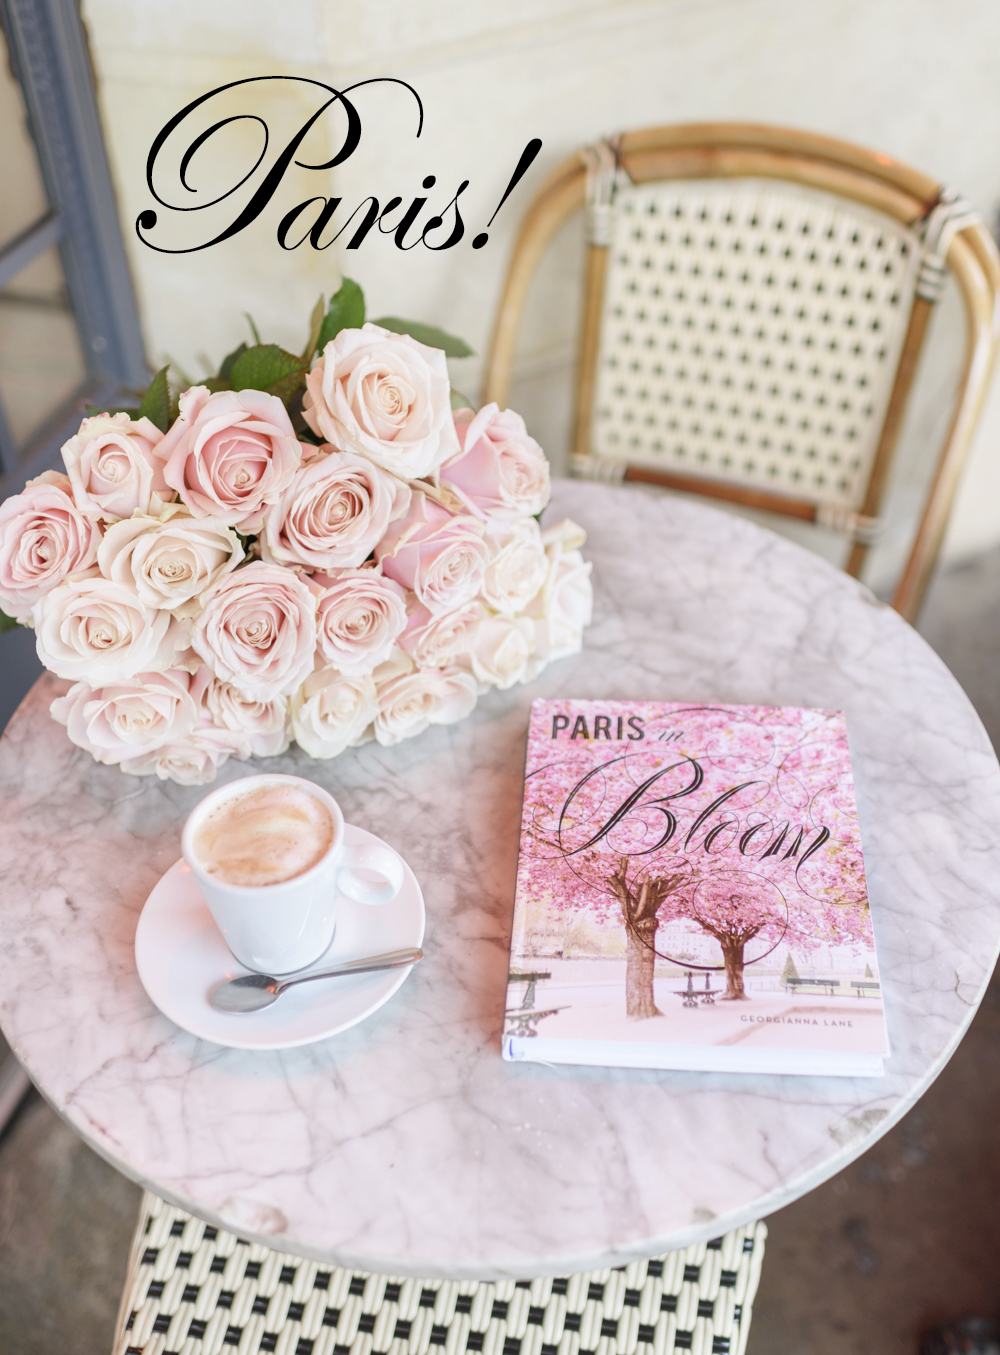 Paris in Bloom Cafe.jpg